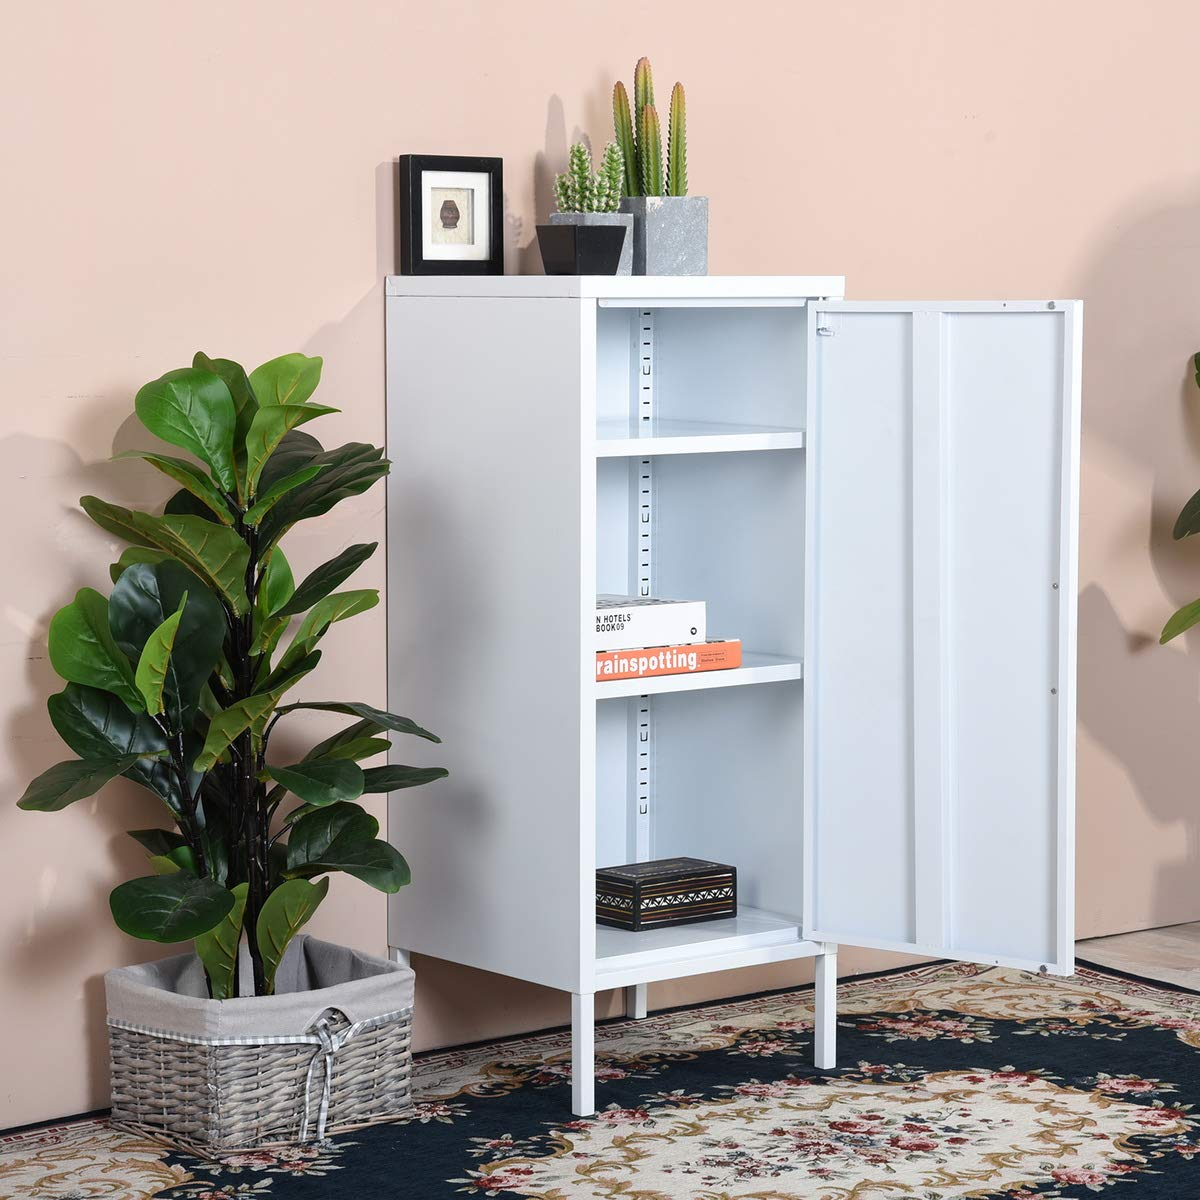 FurnitureR Storage Cabinets Floor Cabinet with Single Doors and Shelves Metal Organizer Unit Free Standing Collection 3 Tier Printing in White for Bathroom Living Room Home Office by FurnitureR